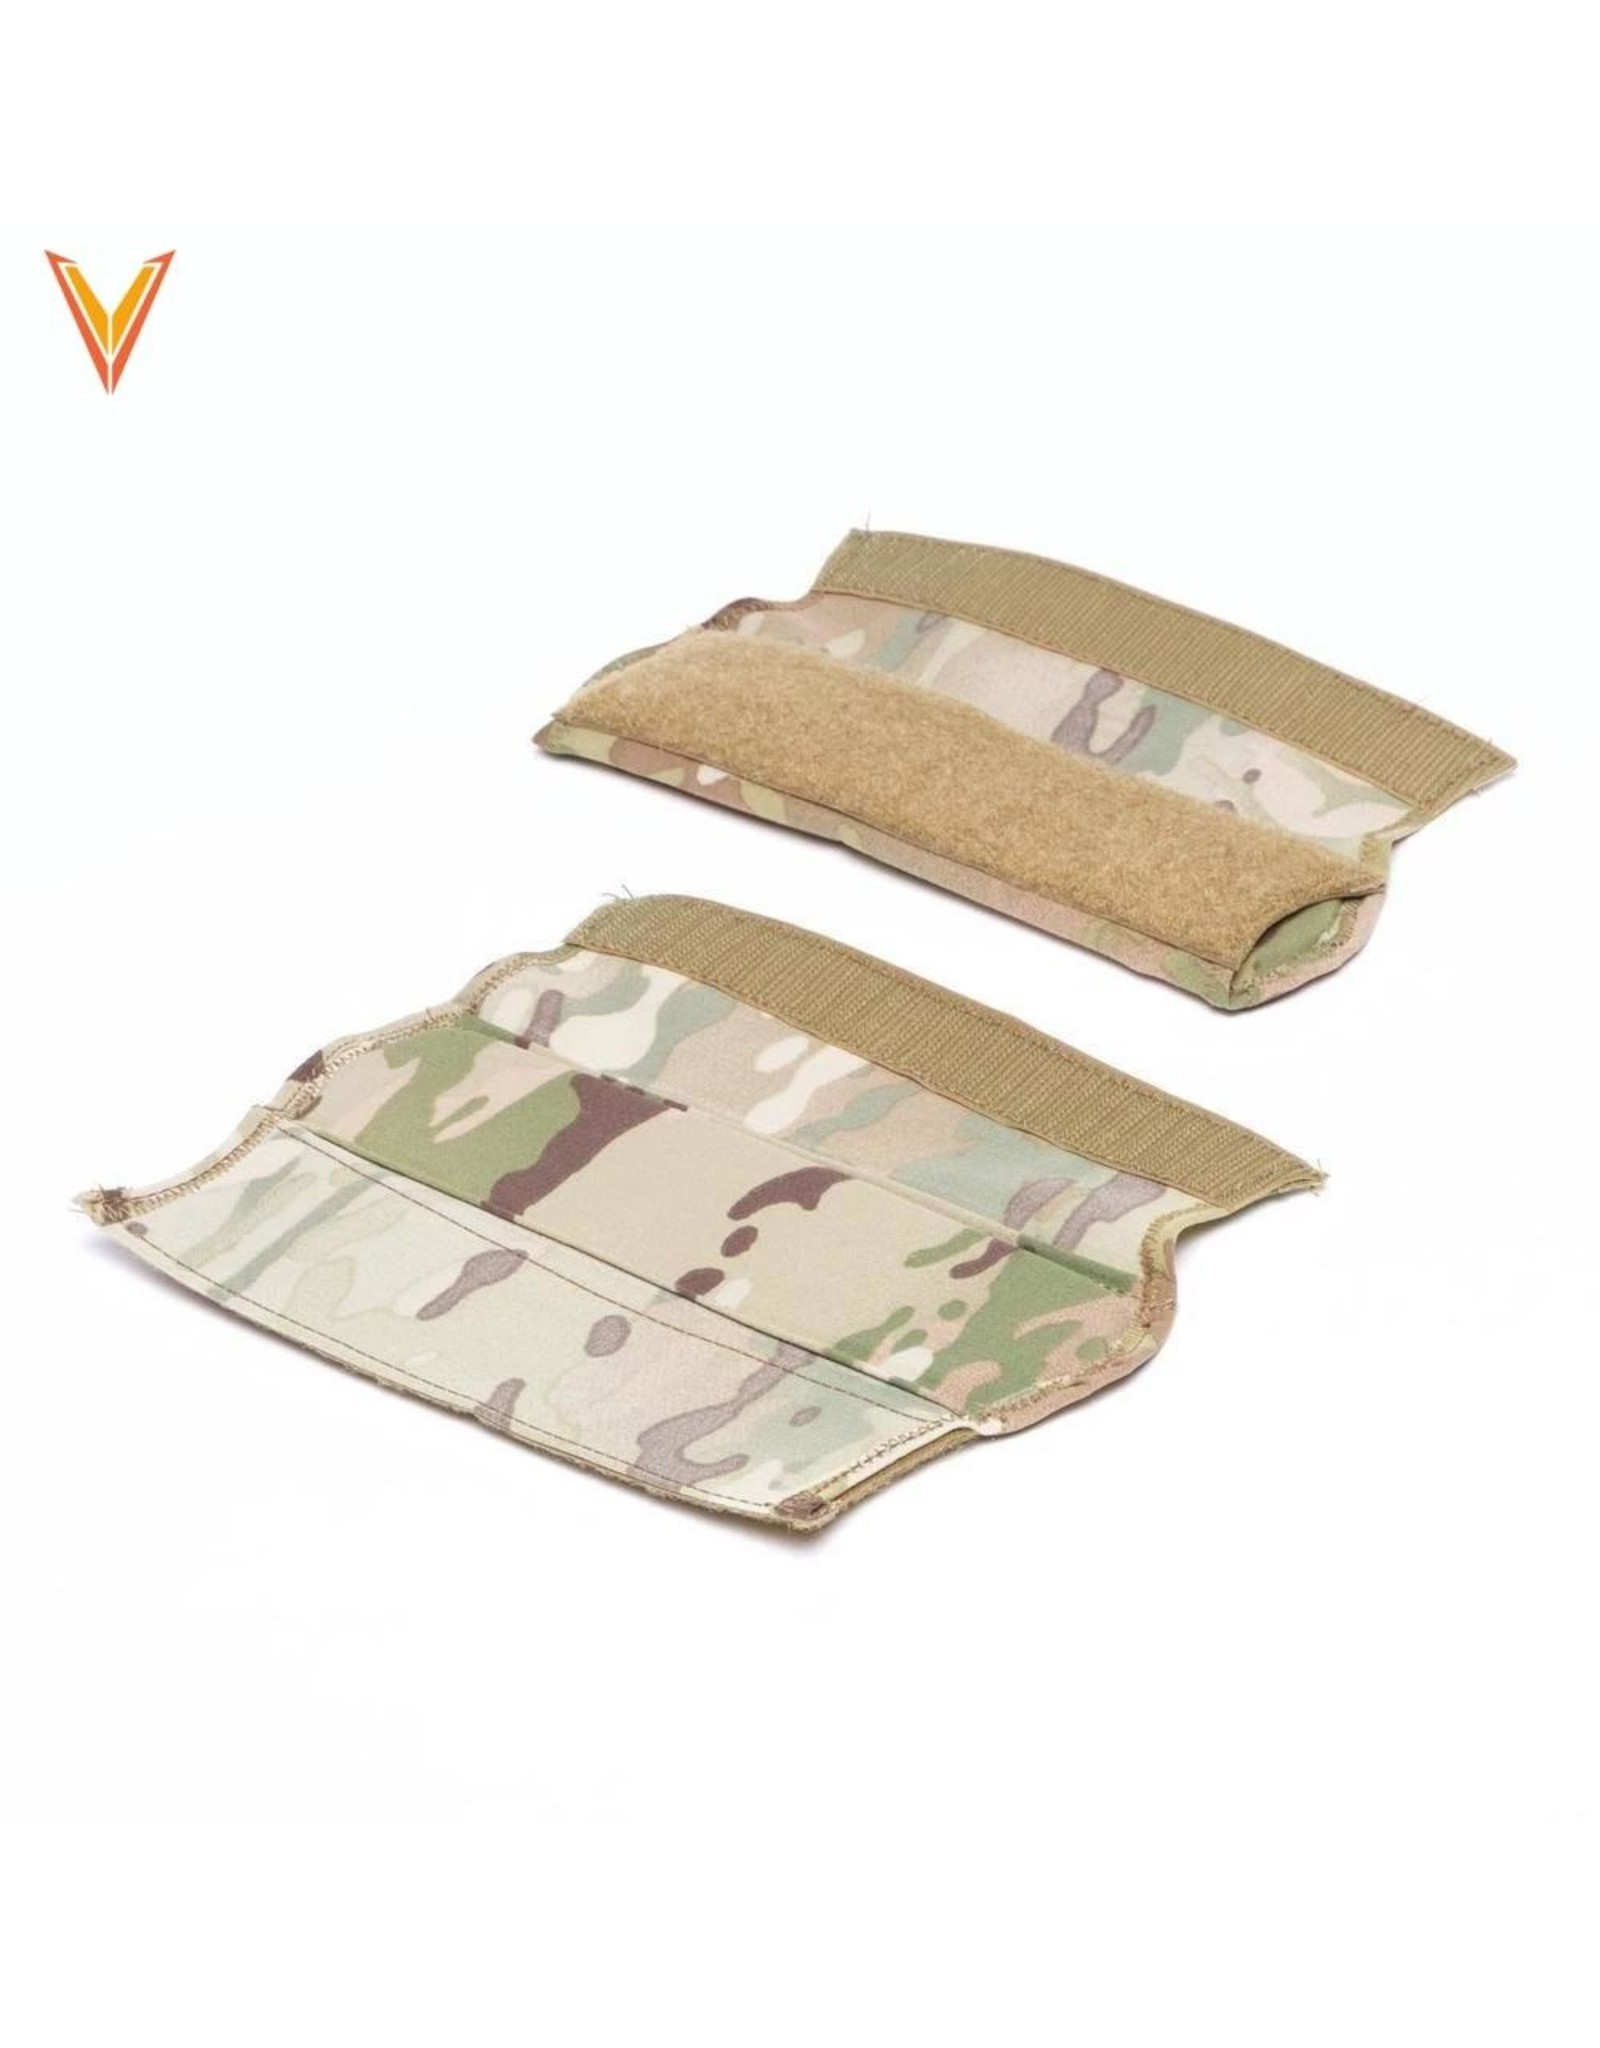 VELOCITY SYSTEMS PADDED SHOULDER SLEEVES